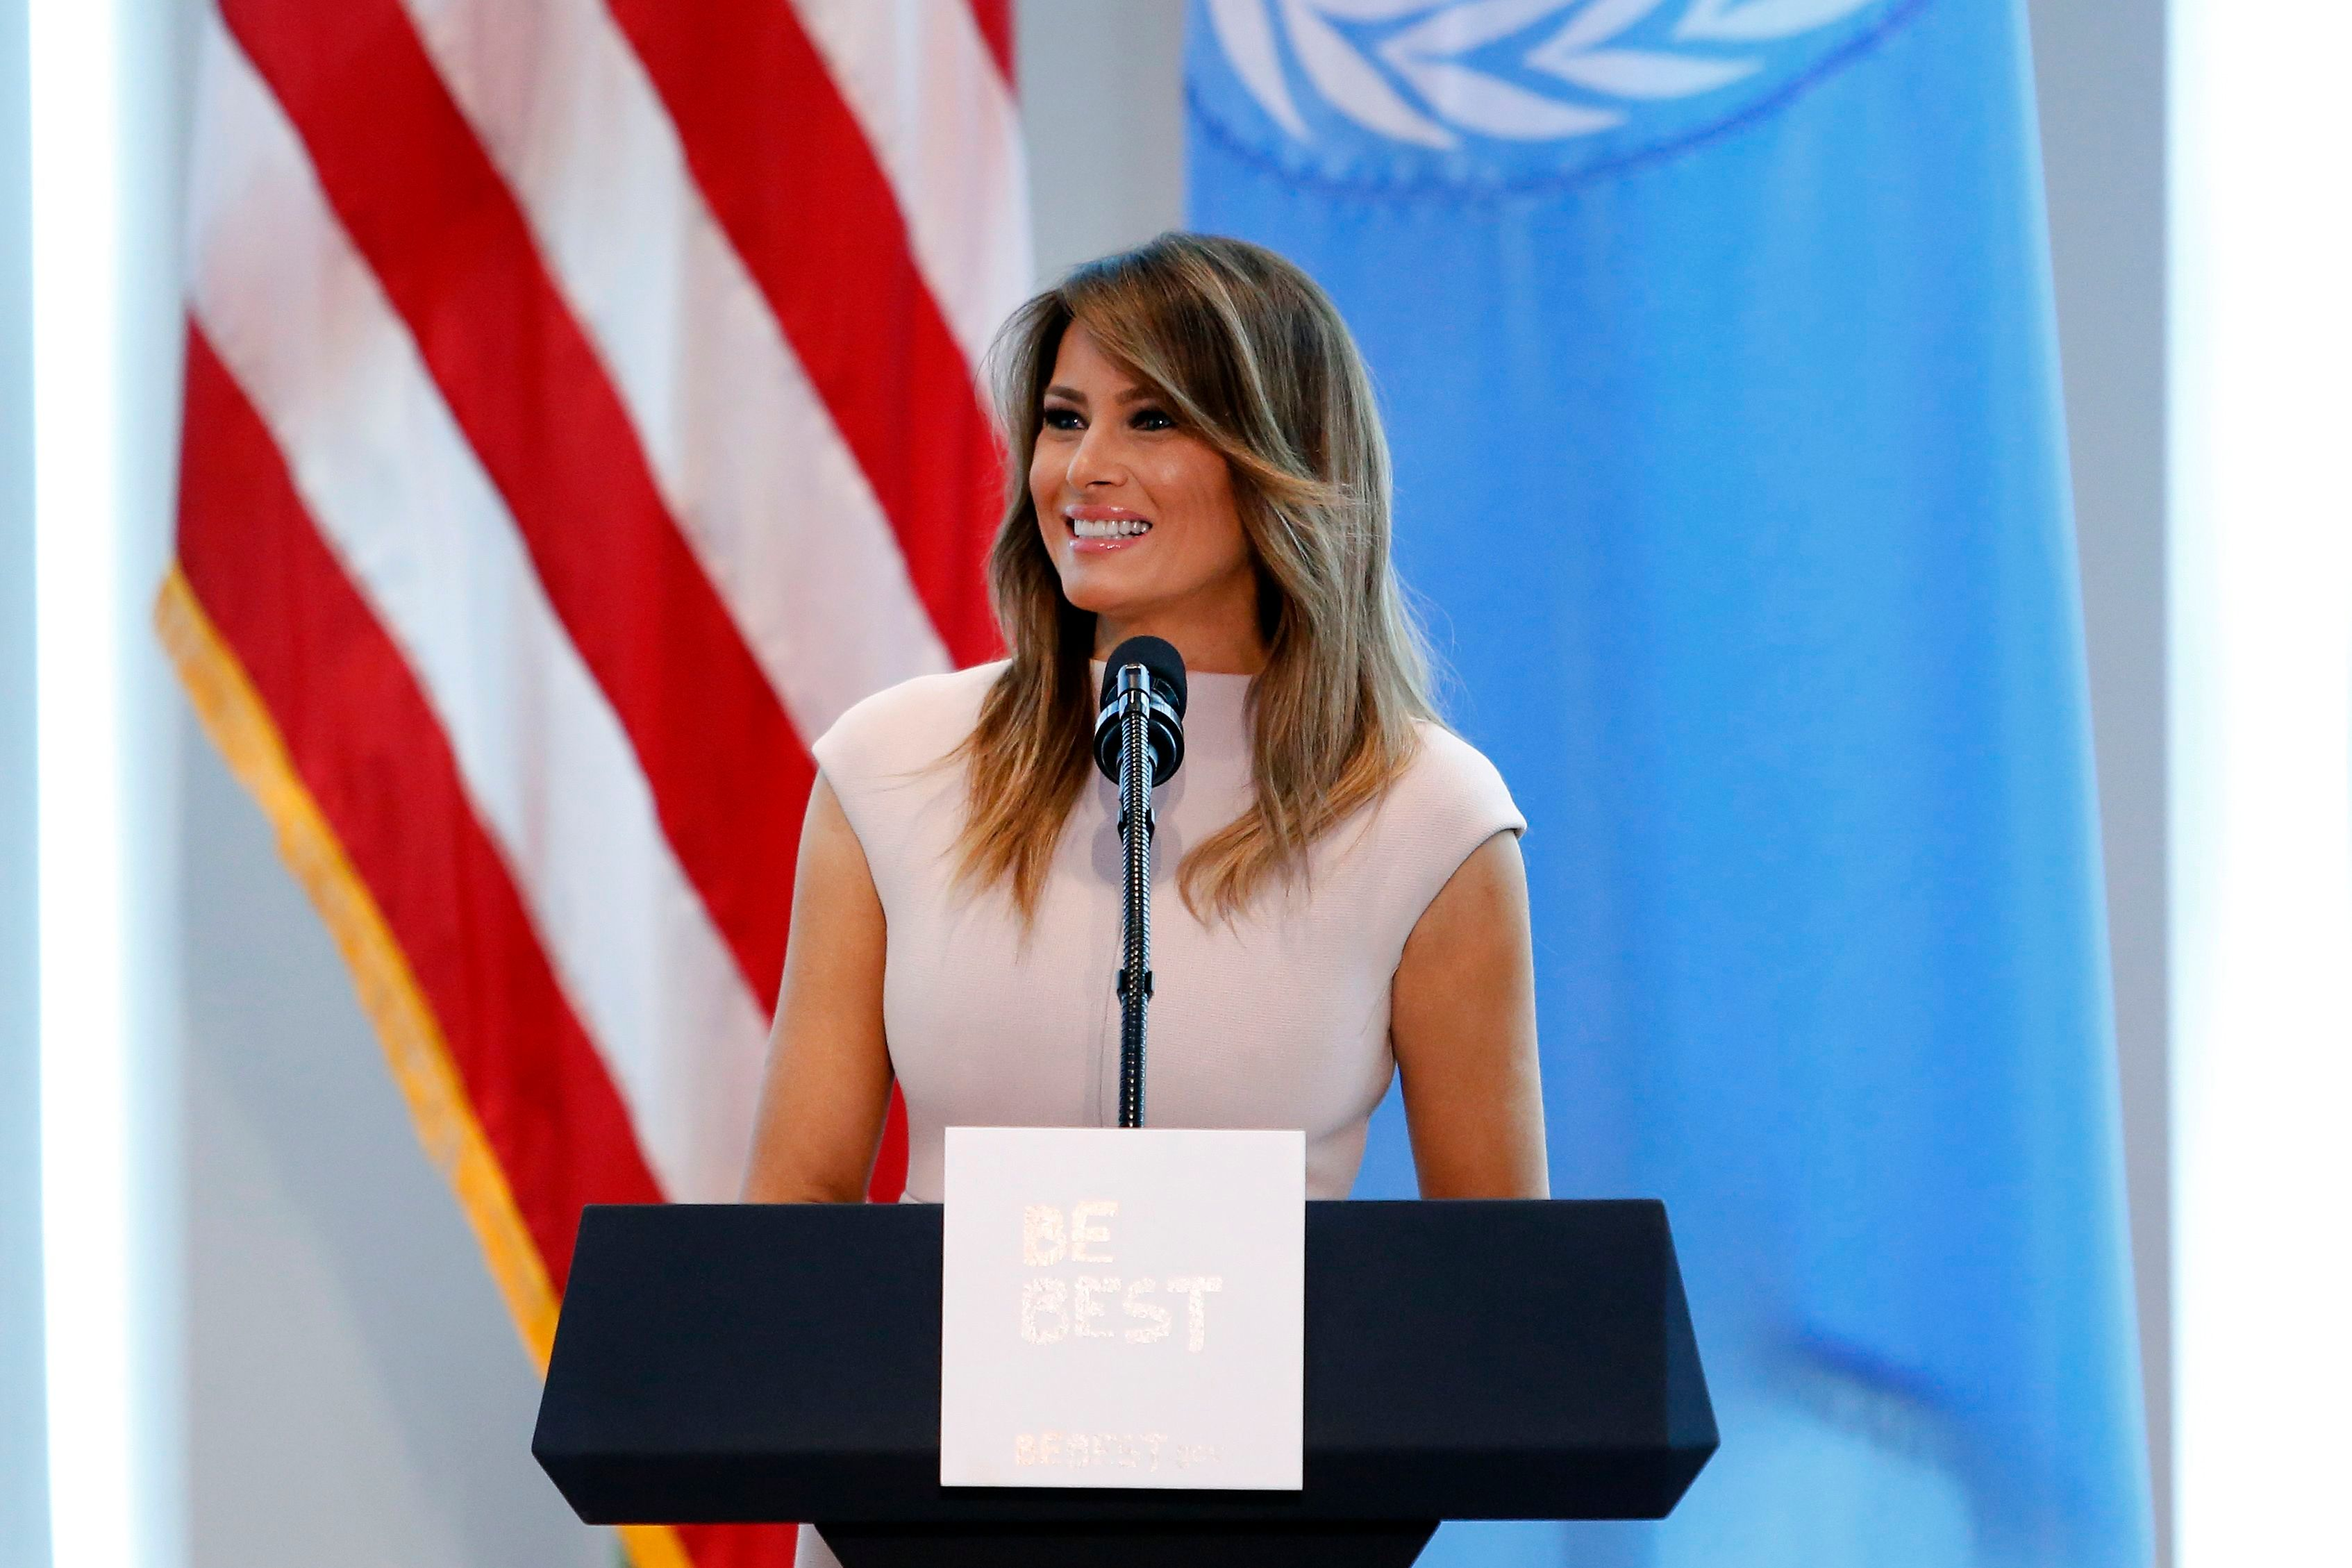 First lady Melania Trump speaks during a reception at the United States mission to the United Nations.